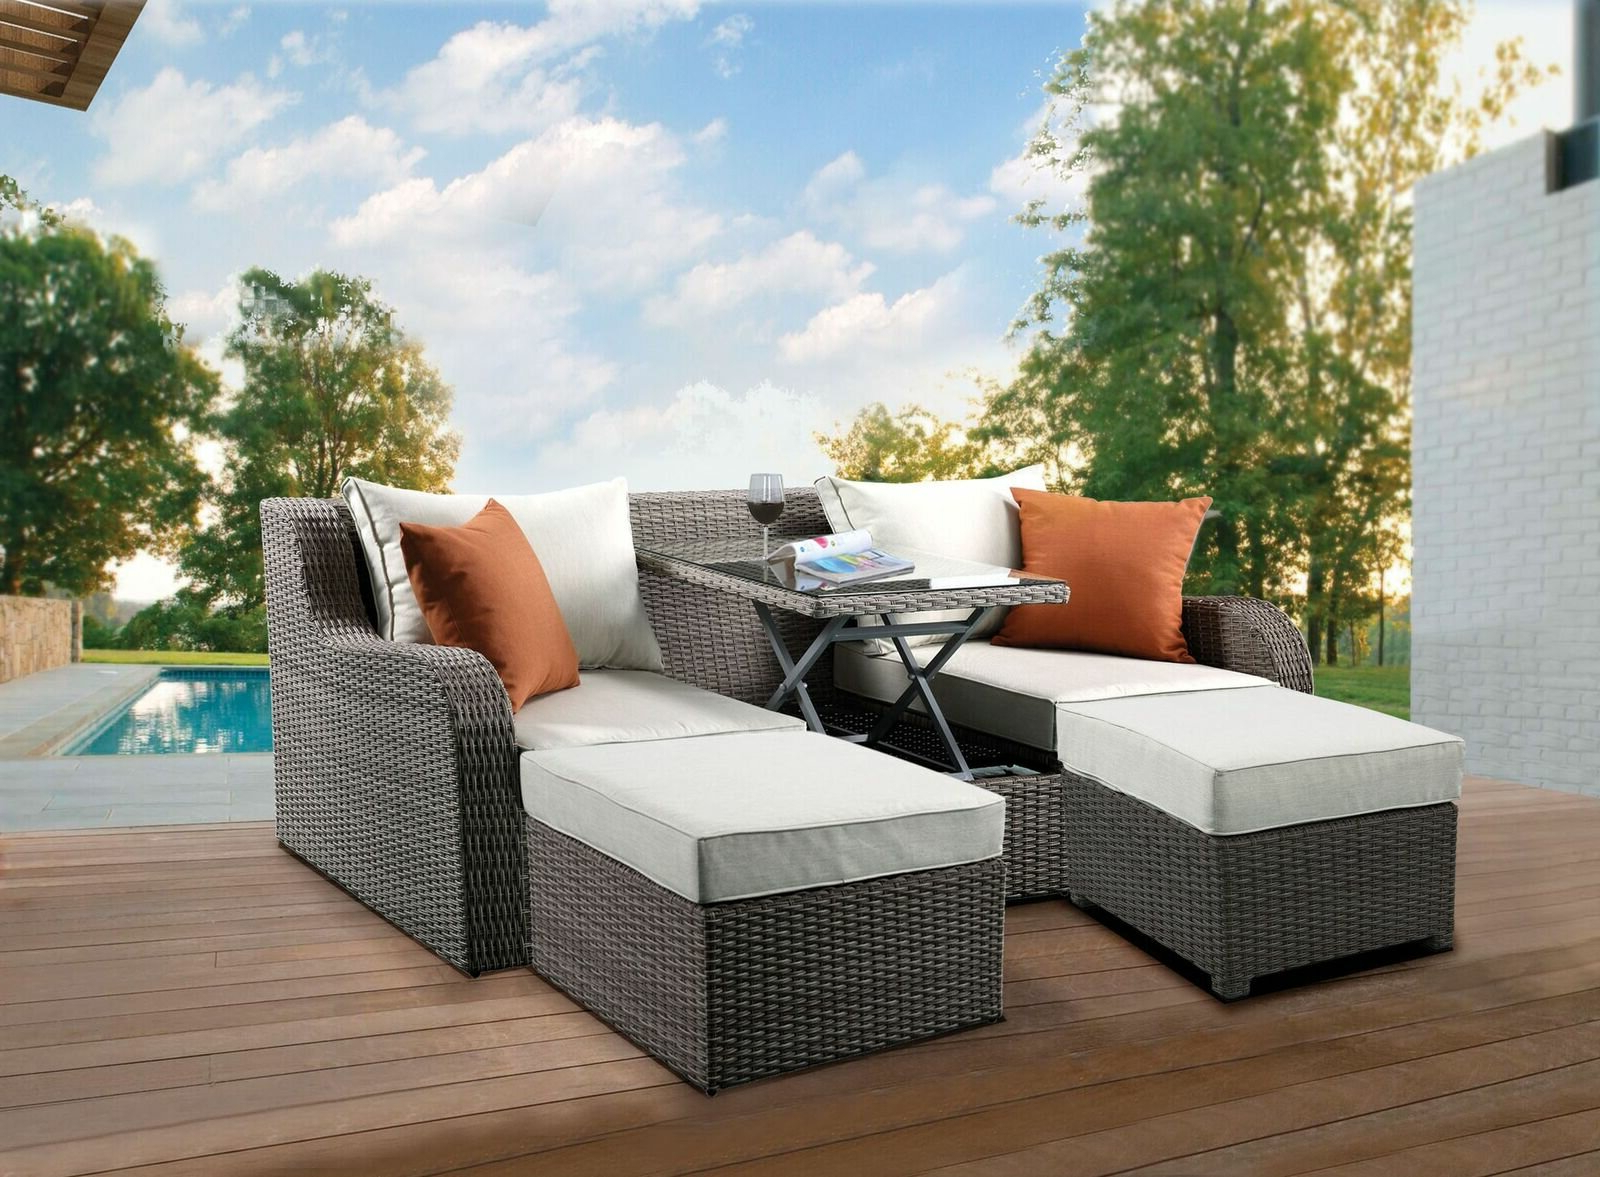 Most Recently Released Vallauris Storage Patio Sectionals With Cushions Pertaining To Platt Patio Sofa With Cushions (View 22 of 25)